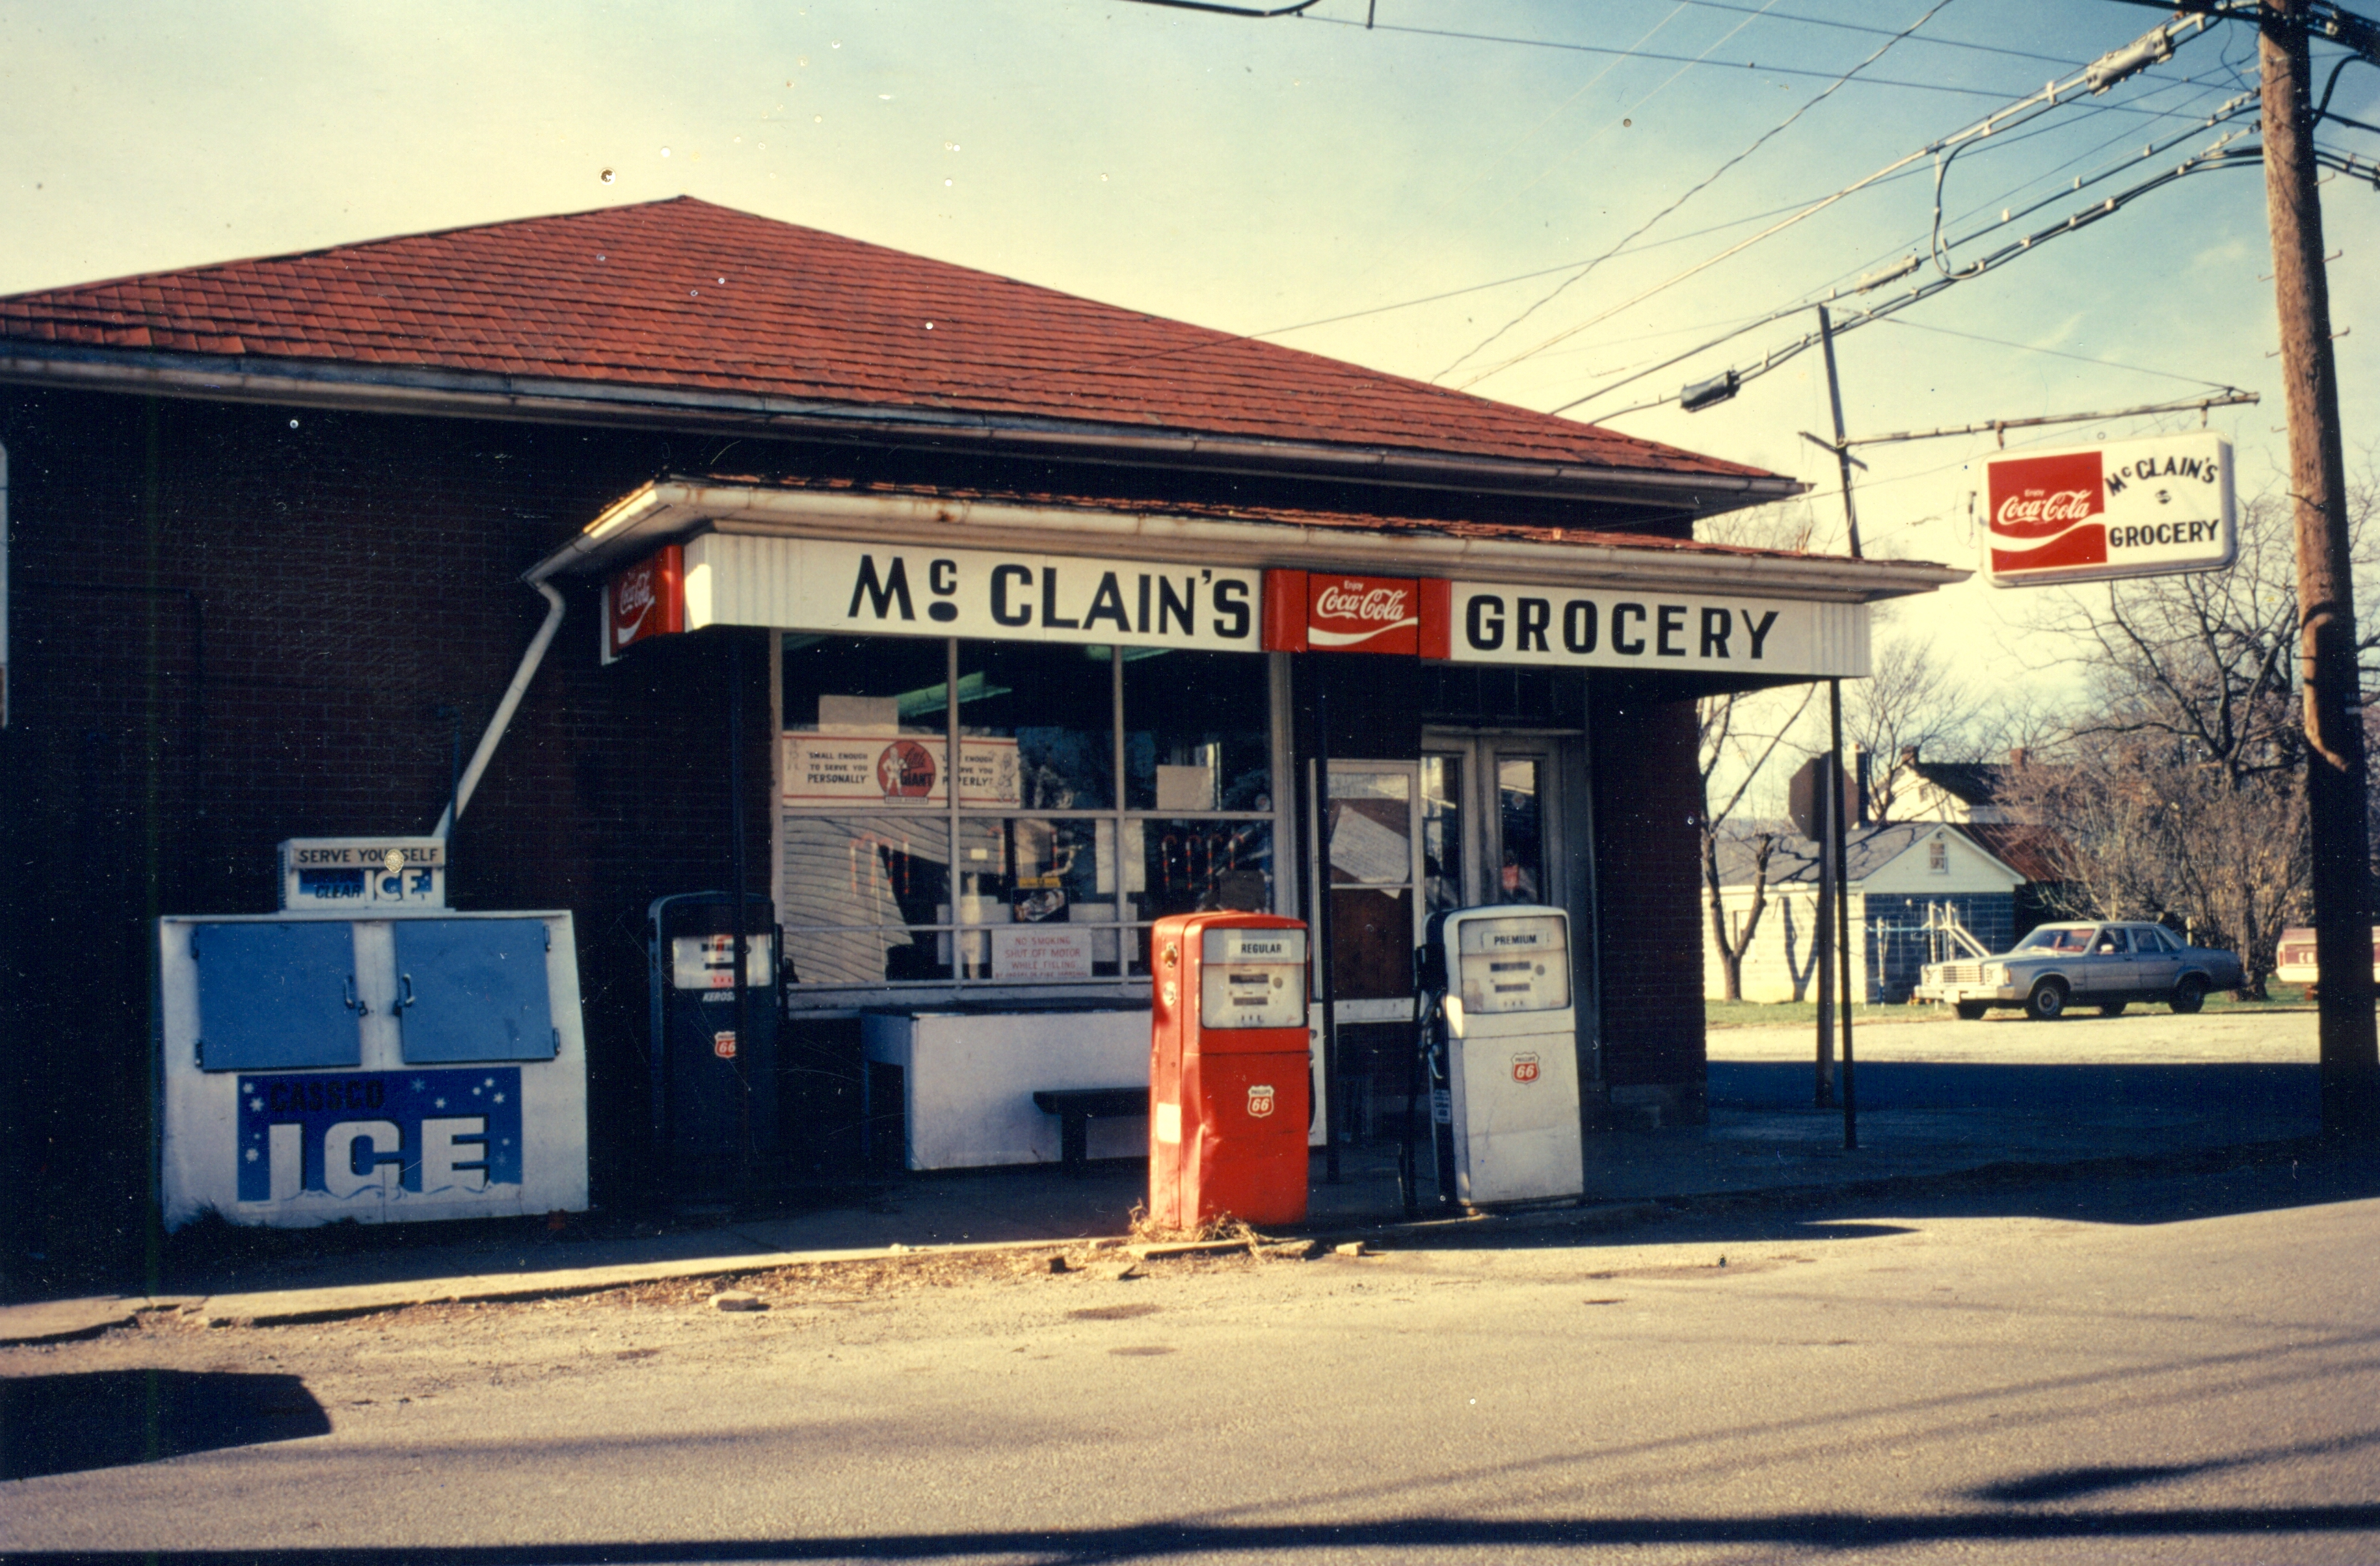 McClains Grocery